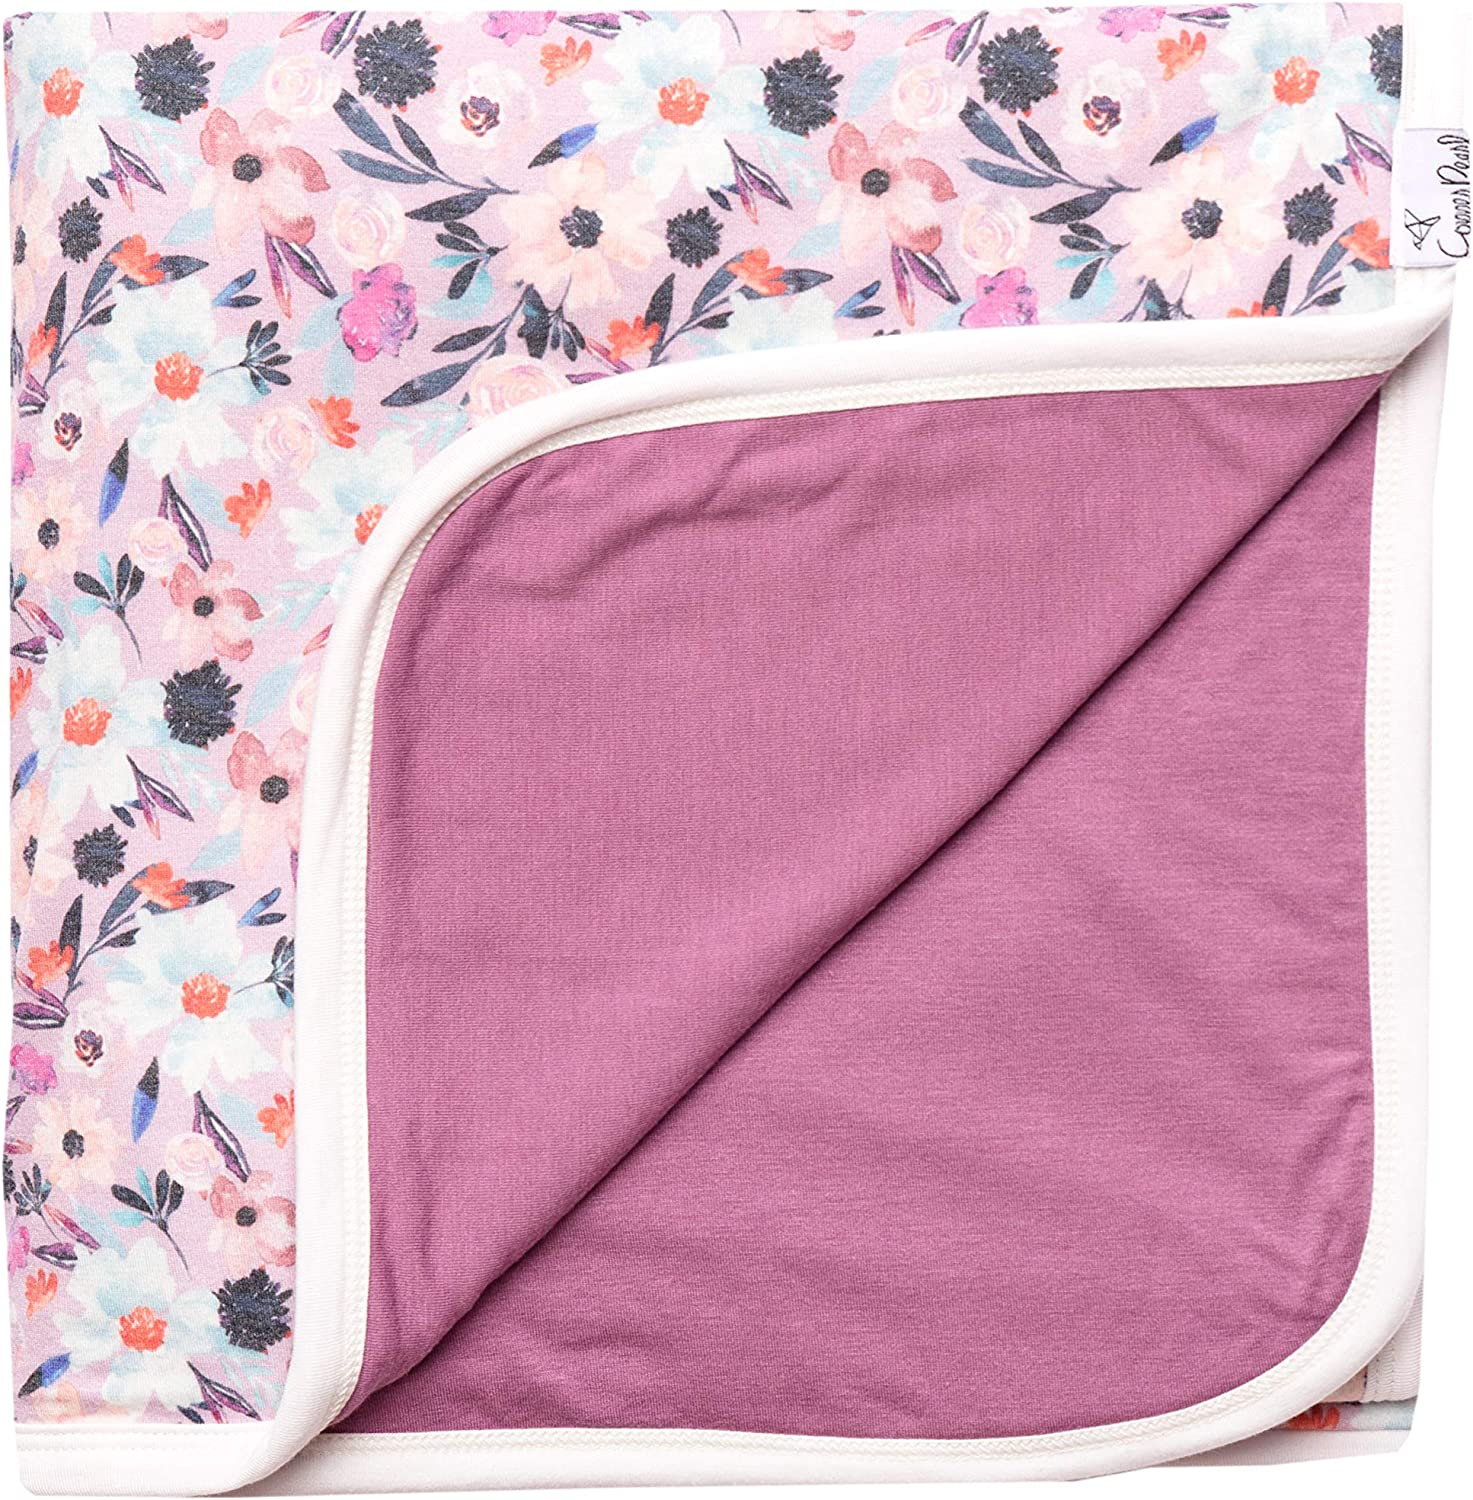 Large Premium Knit Baby 3 Layer Stretchy Quilt Blanket Floral Morgan  by Copper Pearl